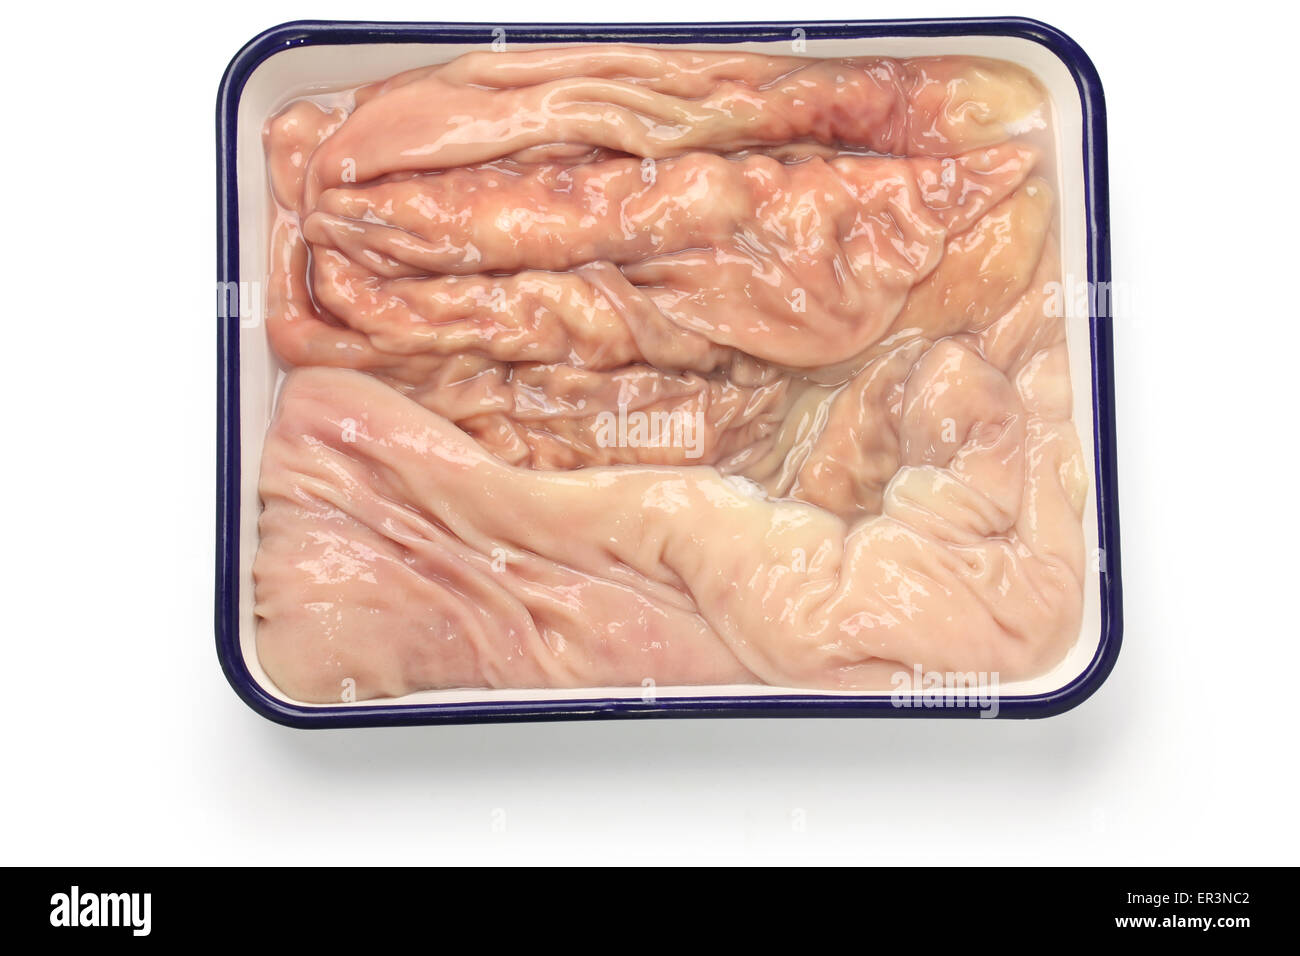 abomasum, rennet bag, reed tripe, the fourth stomach of a cow in butcher tray isolated on white background - Stock Image